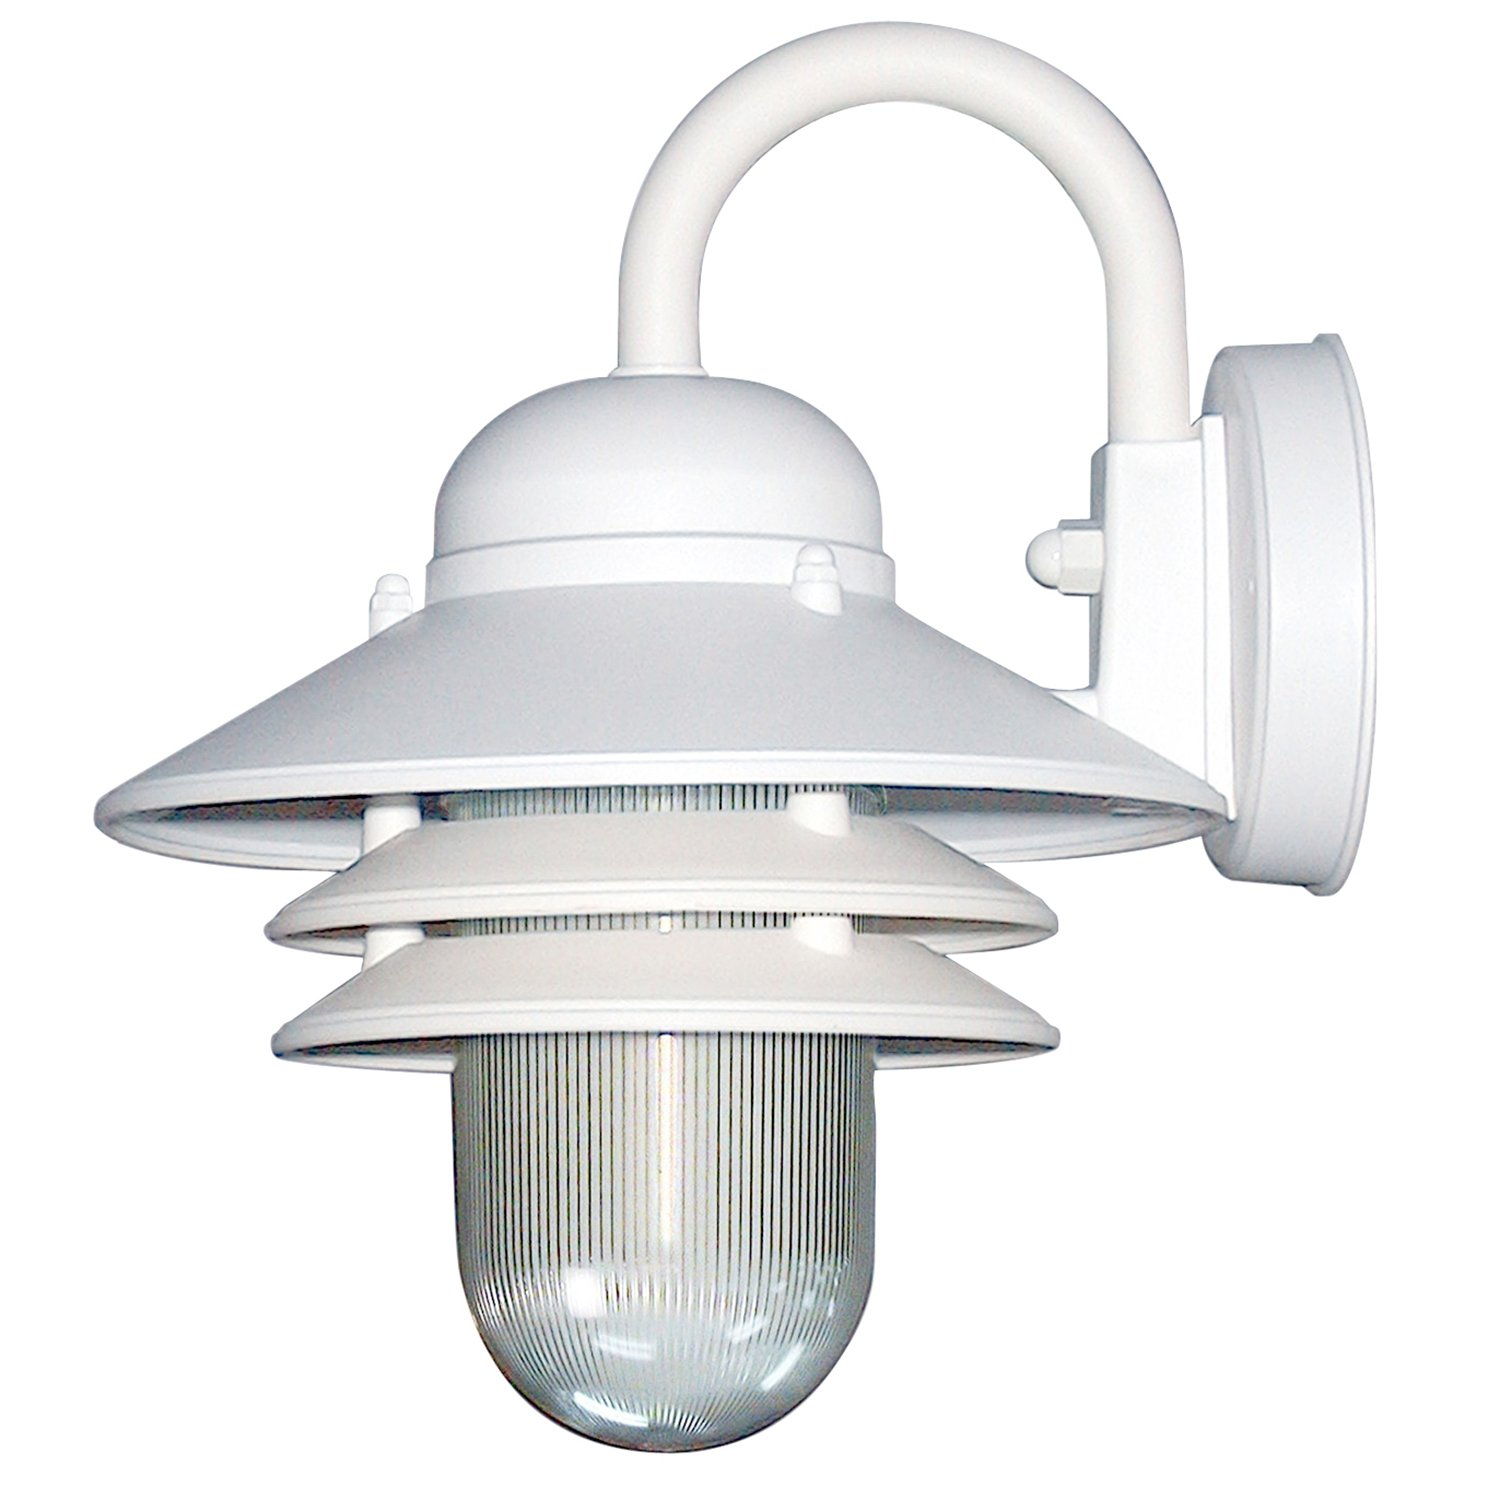 Sunlite 47202-SU DOD/NC/WH/CL/MED Decorative Outdoor Nautical Collection Polycarbonate Fixture, White Finish, Clear Lens